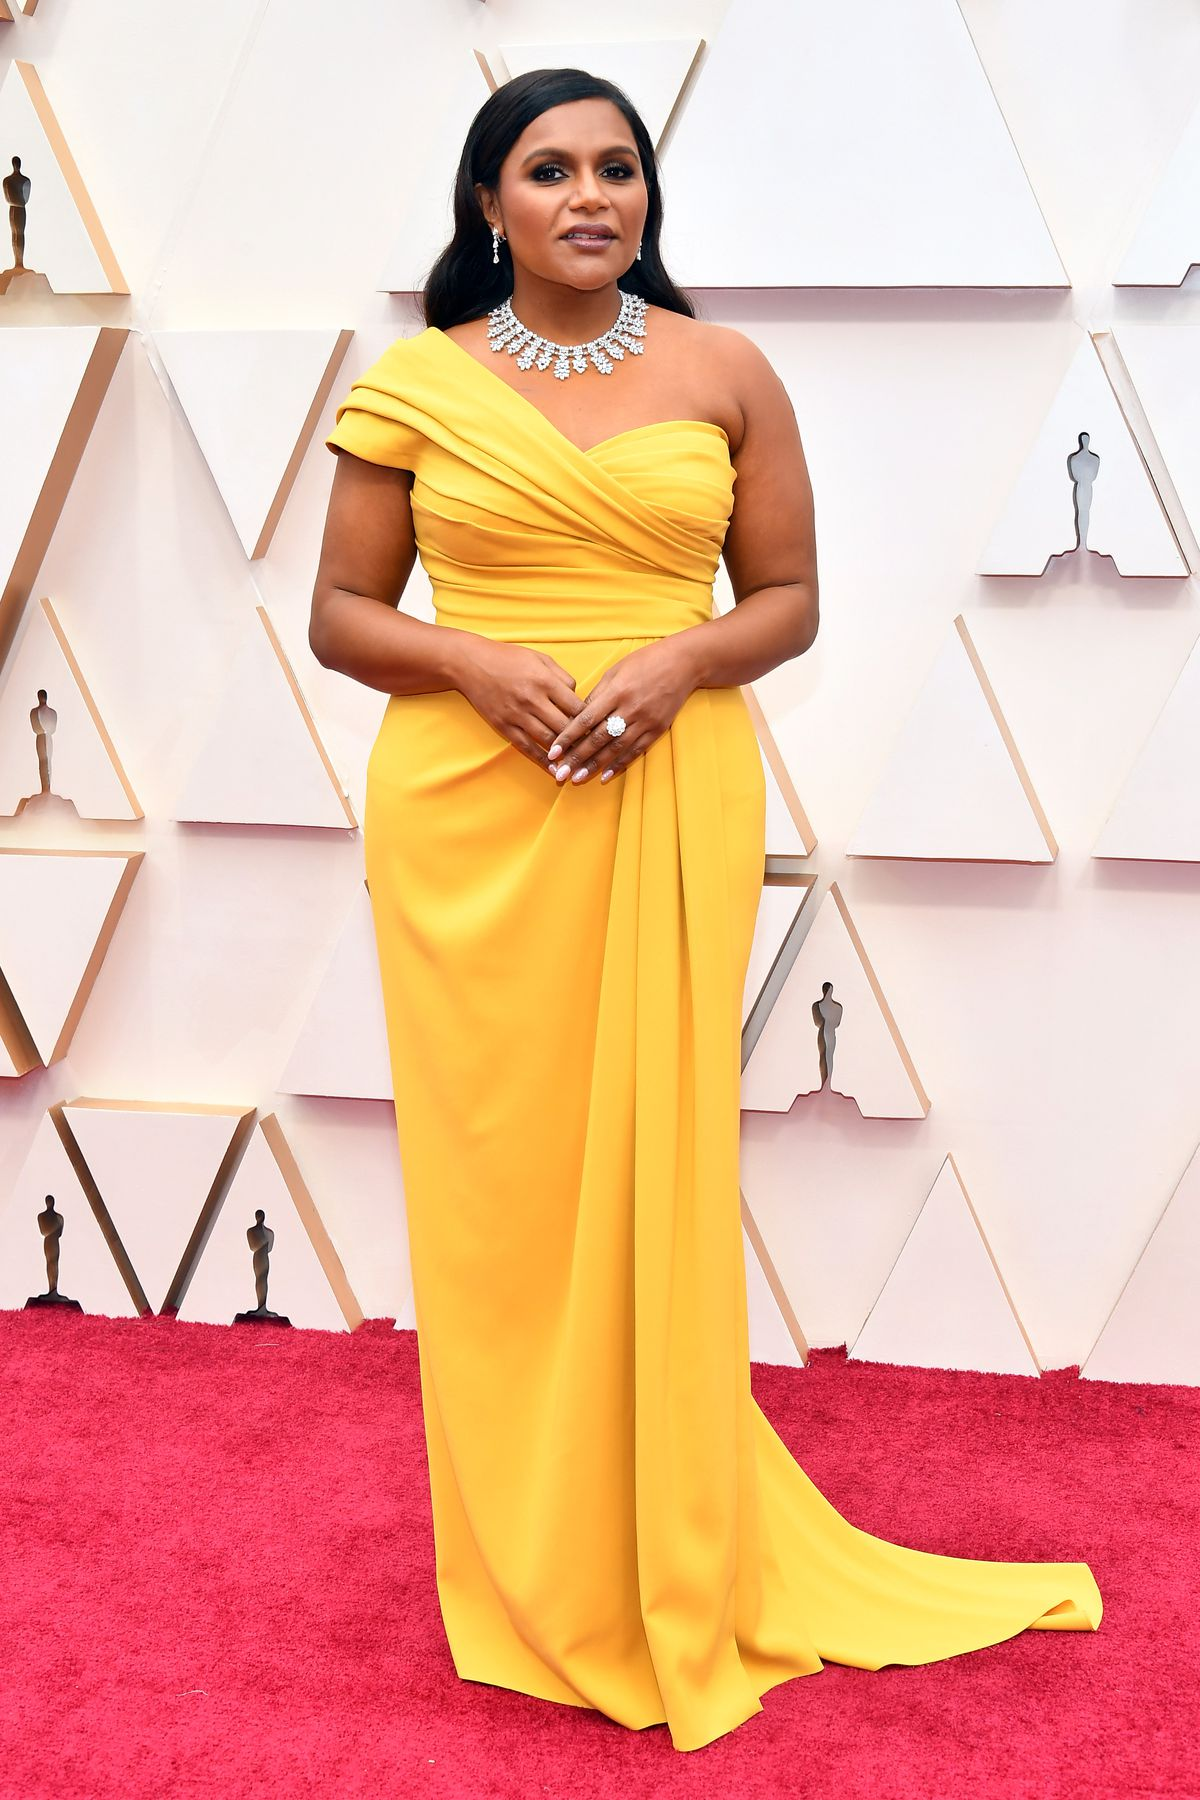 Mindy Kaling attends the 92nd Annual Academy Awards in a yellow Dolce & Gabbana gown.